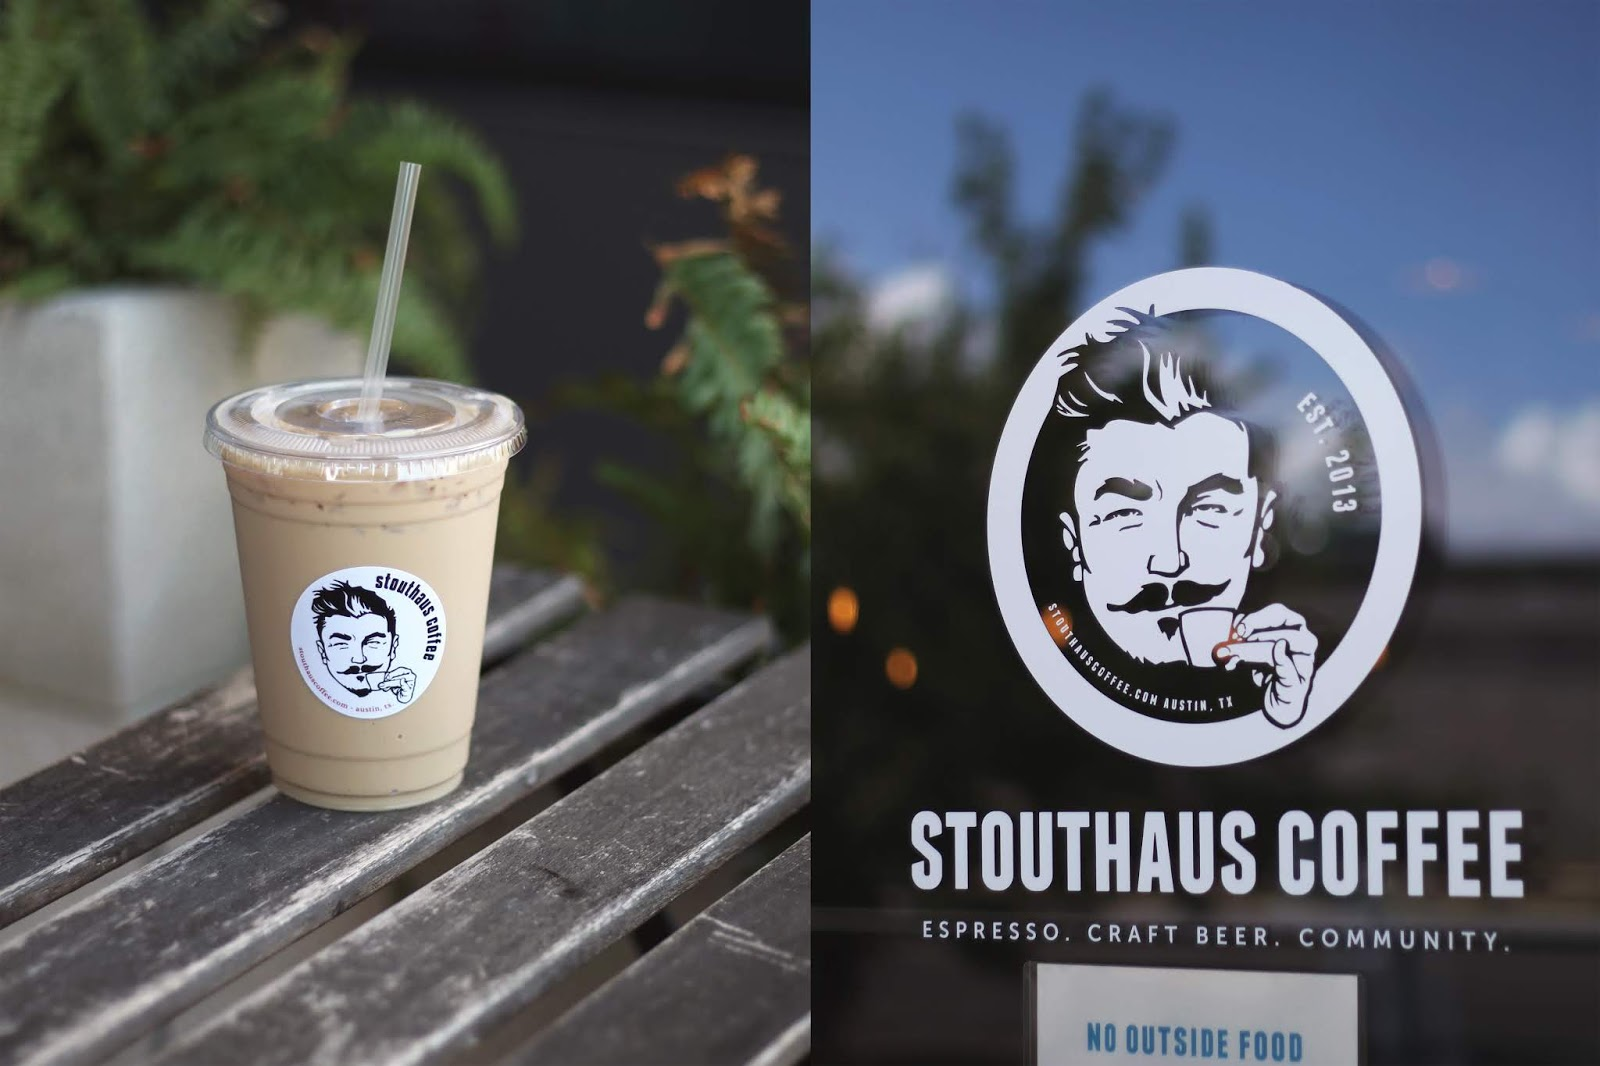 Stouthaus Coffee Austin, Iced Coffee, Cozy Coffee Shop, Coffee Shops Vibe